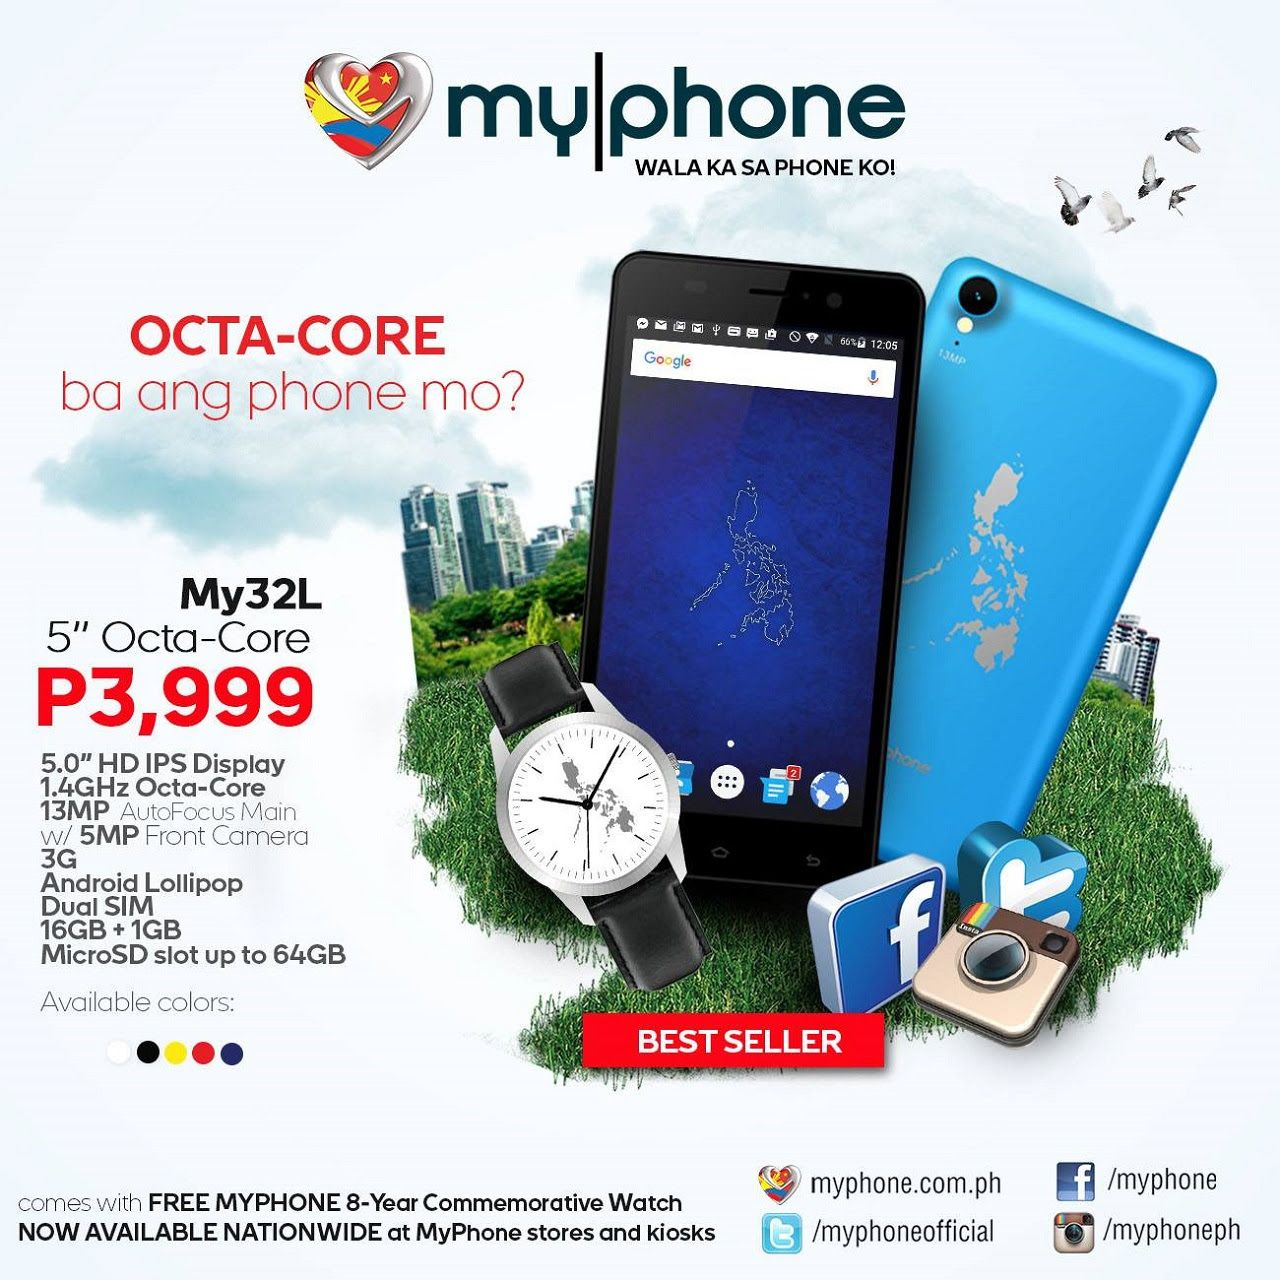 Cdiscount Smartphone Nouveau Myphone My32l with Octa Core soc In Philippine for PHP 3999 Of 32 Élégant Cdiscount Smartphone